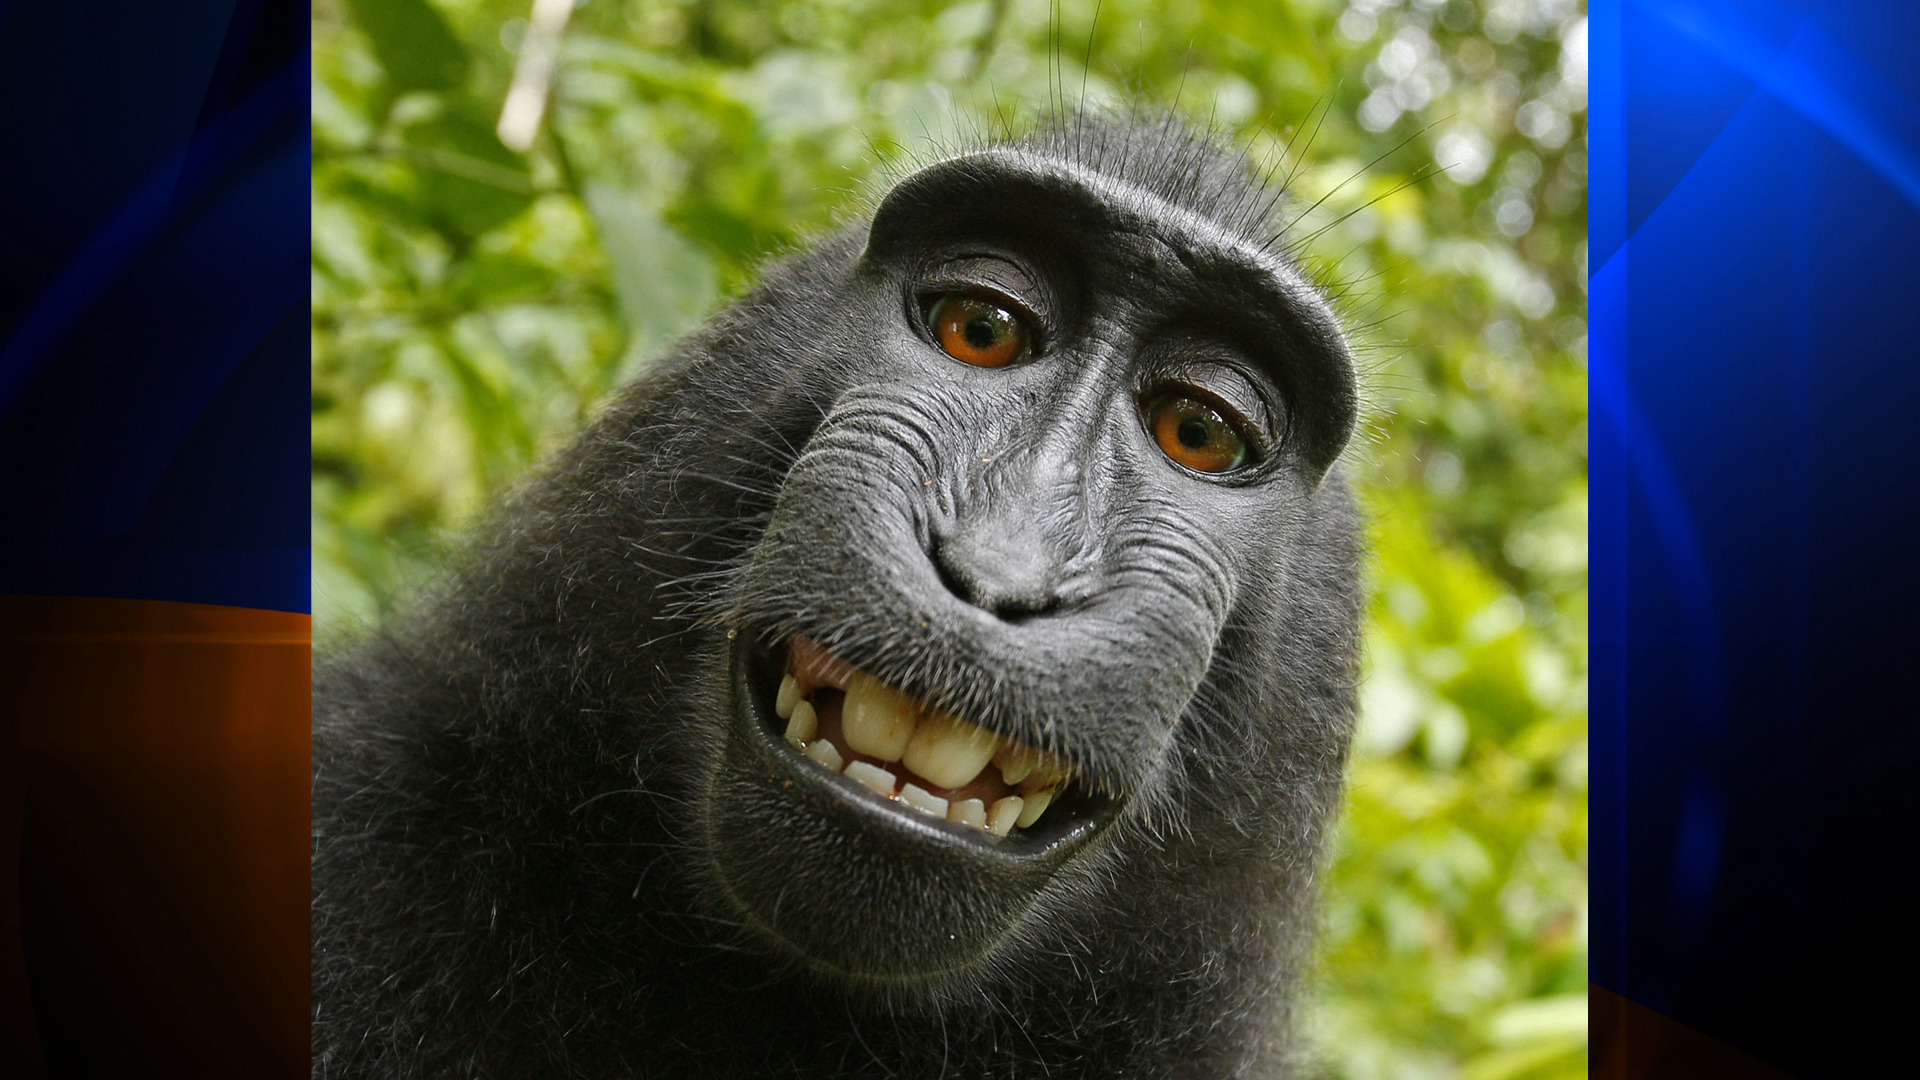 The photographer behind the famous monkey selfie picture is threatening to take legal action against Wikimedia after they refused to remove his picture because 'the monkey took it'. (Credit: Caters News Agency via CNN Wire)